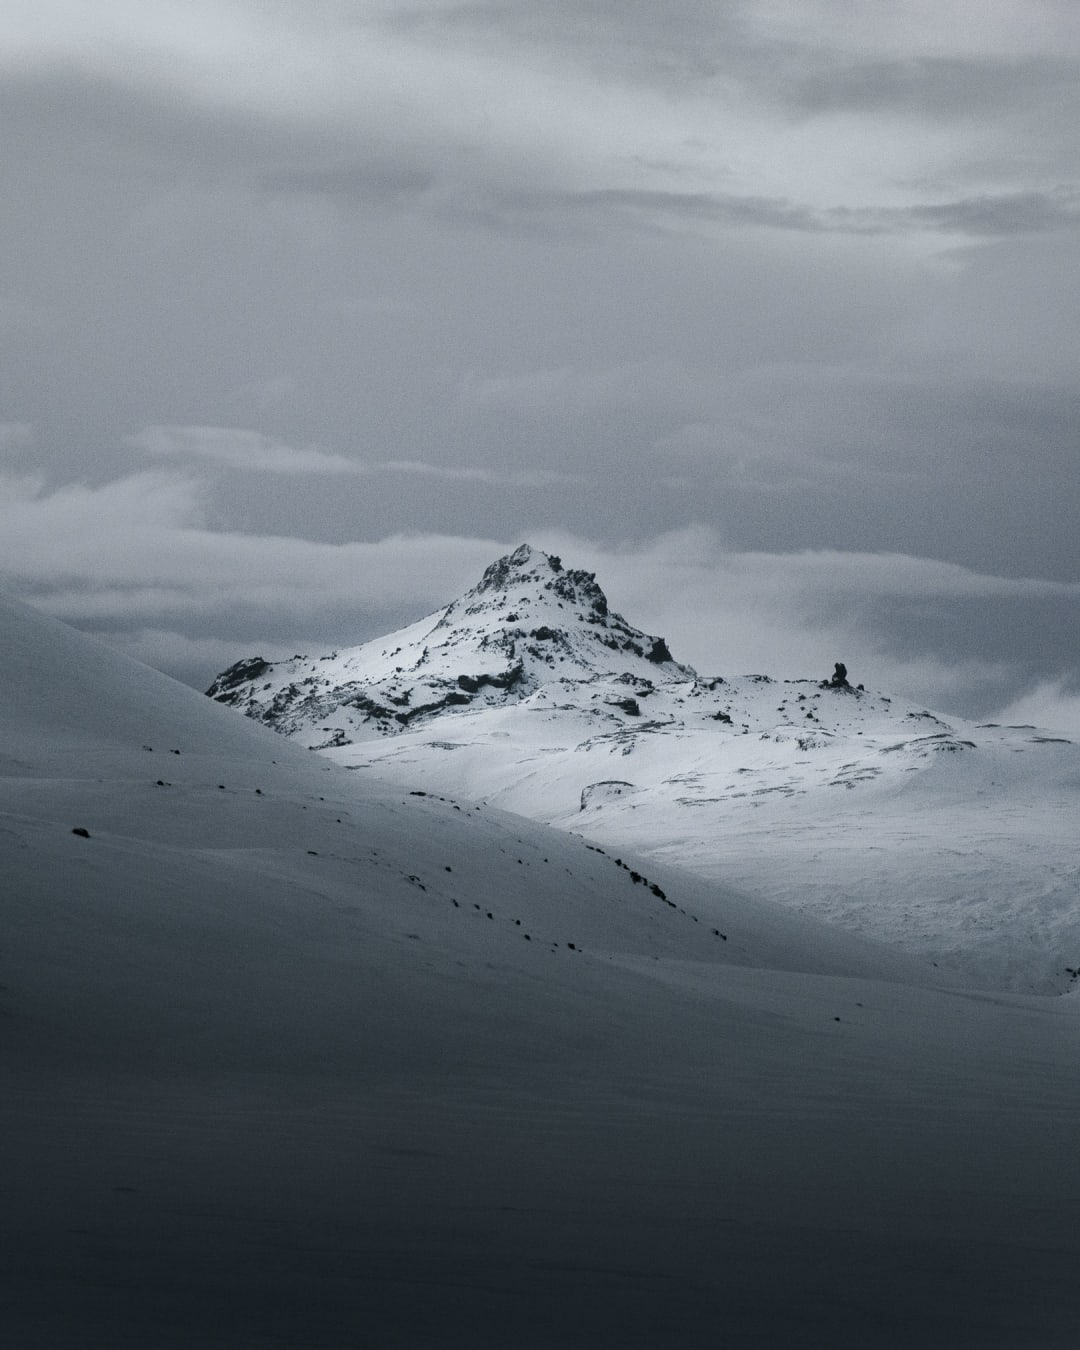 a stark and minimal snowy mountain scene landscape photography of Iceland